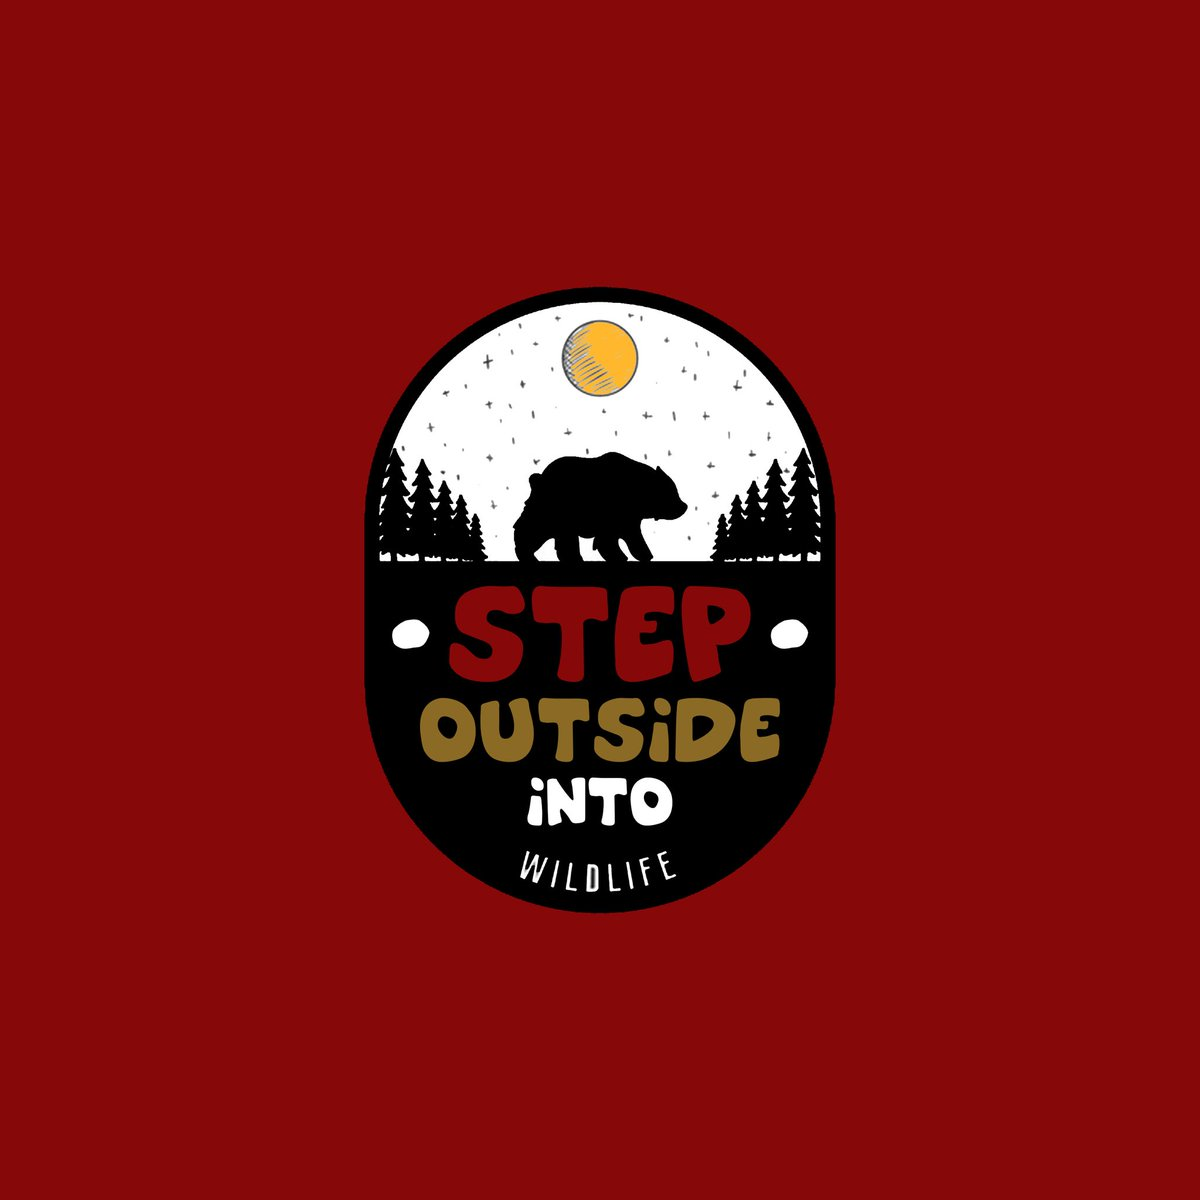 Step Outside into Wildlife 🐻  . . . .  #learnlogodesign #logodesigner #ladnerisawesome #logoversity https://t.co/8RZN9aRy4X